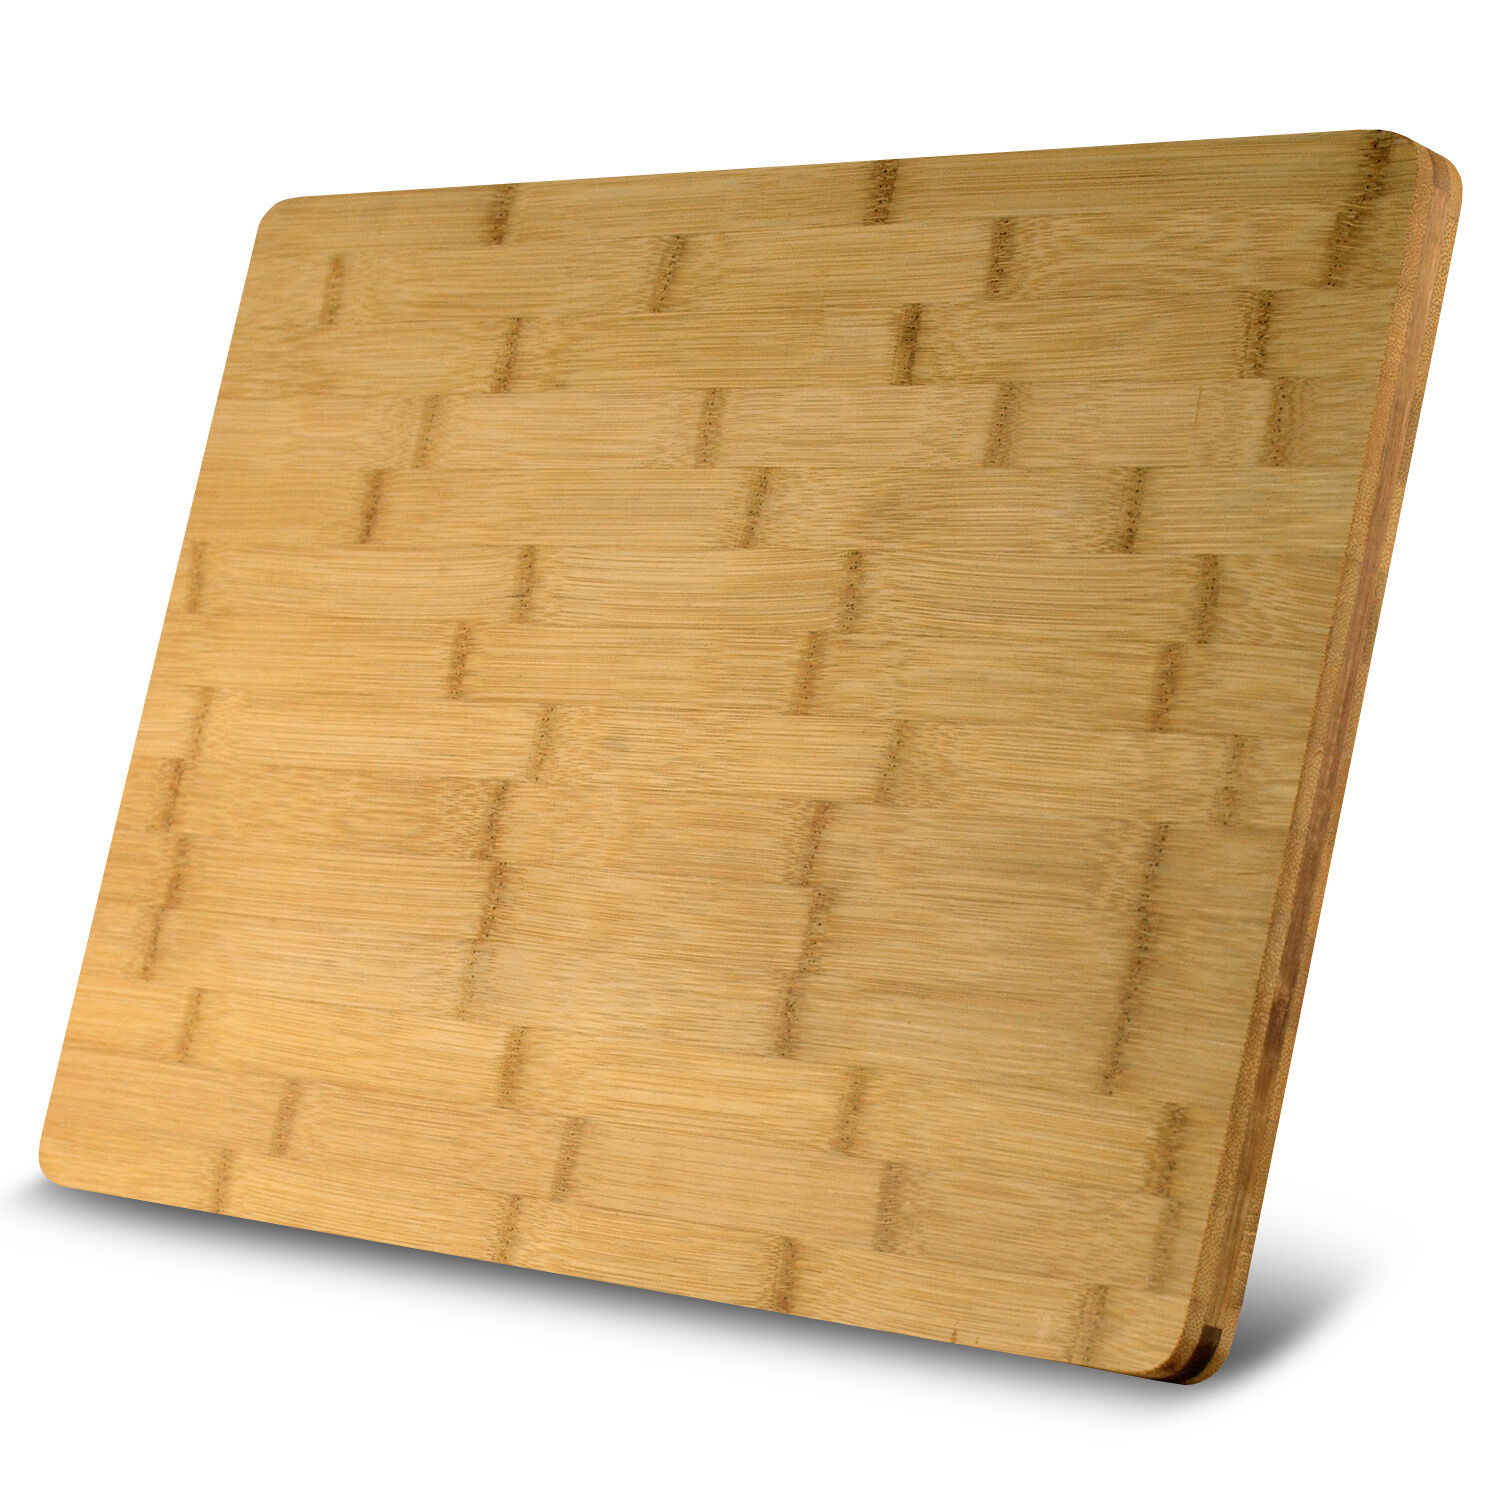 heim 39 s xl cutting board large groove kitchen organic bamboo wood chopping boards ebay. Black Bedroom Furniture Sets. Home Design Ideas